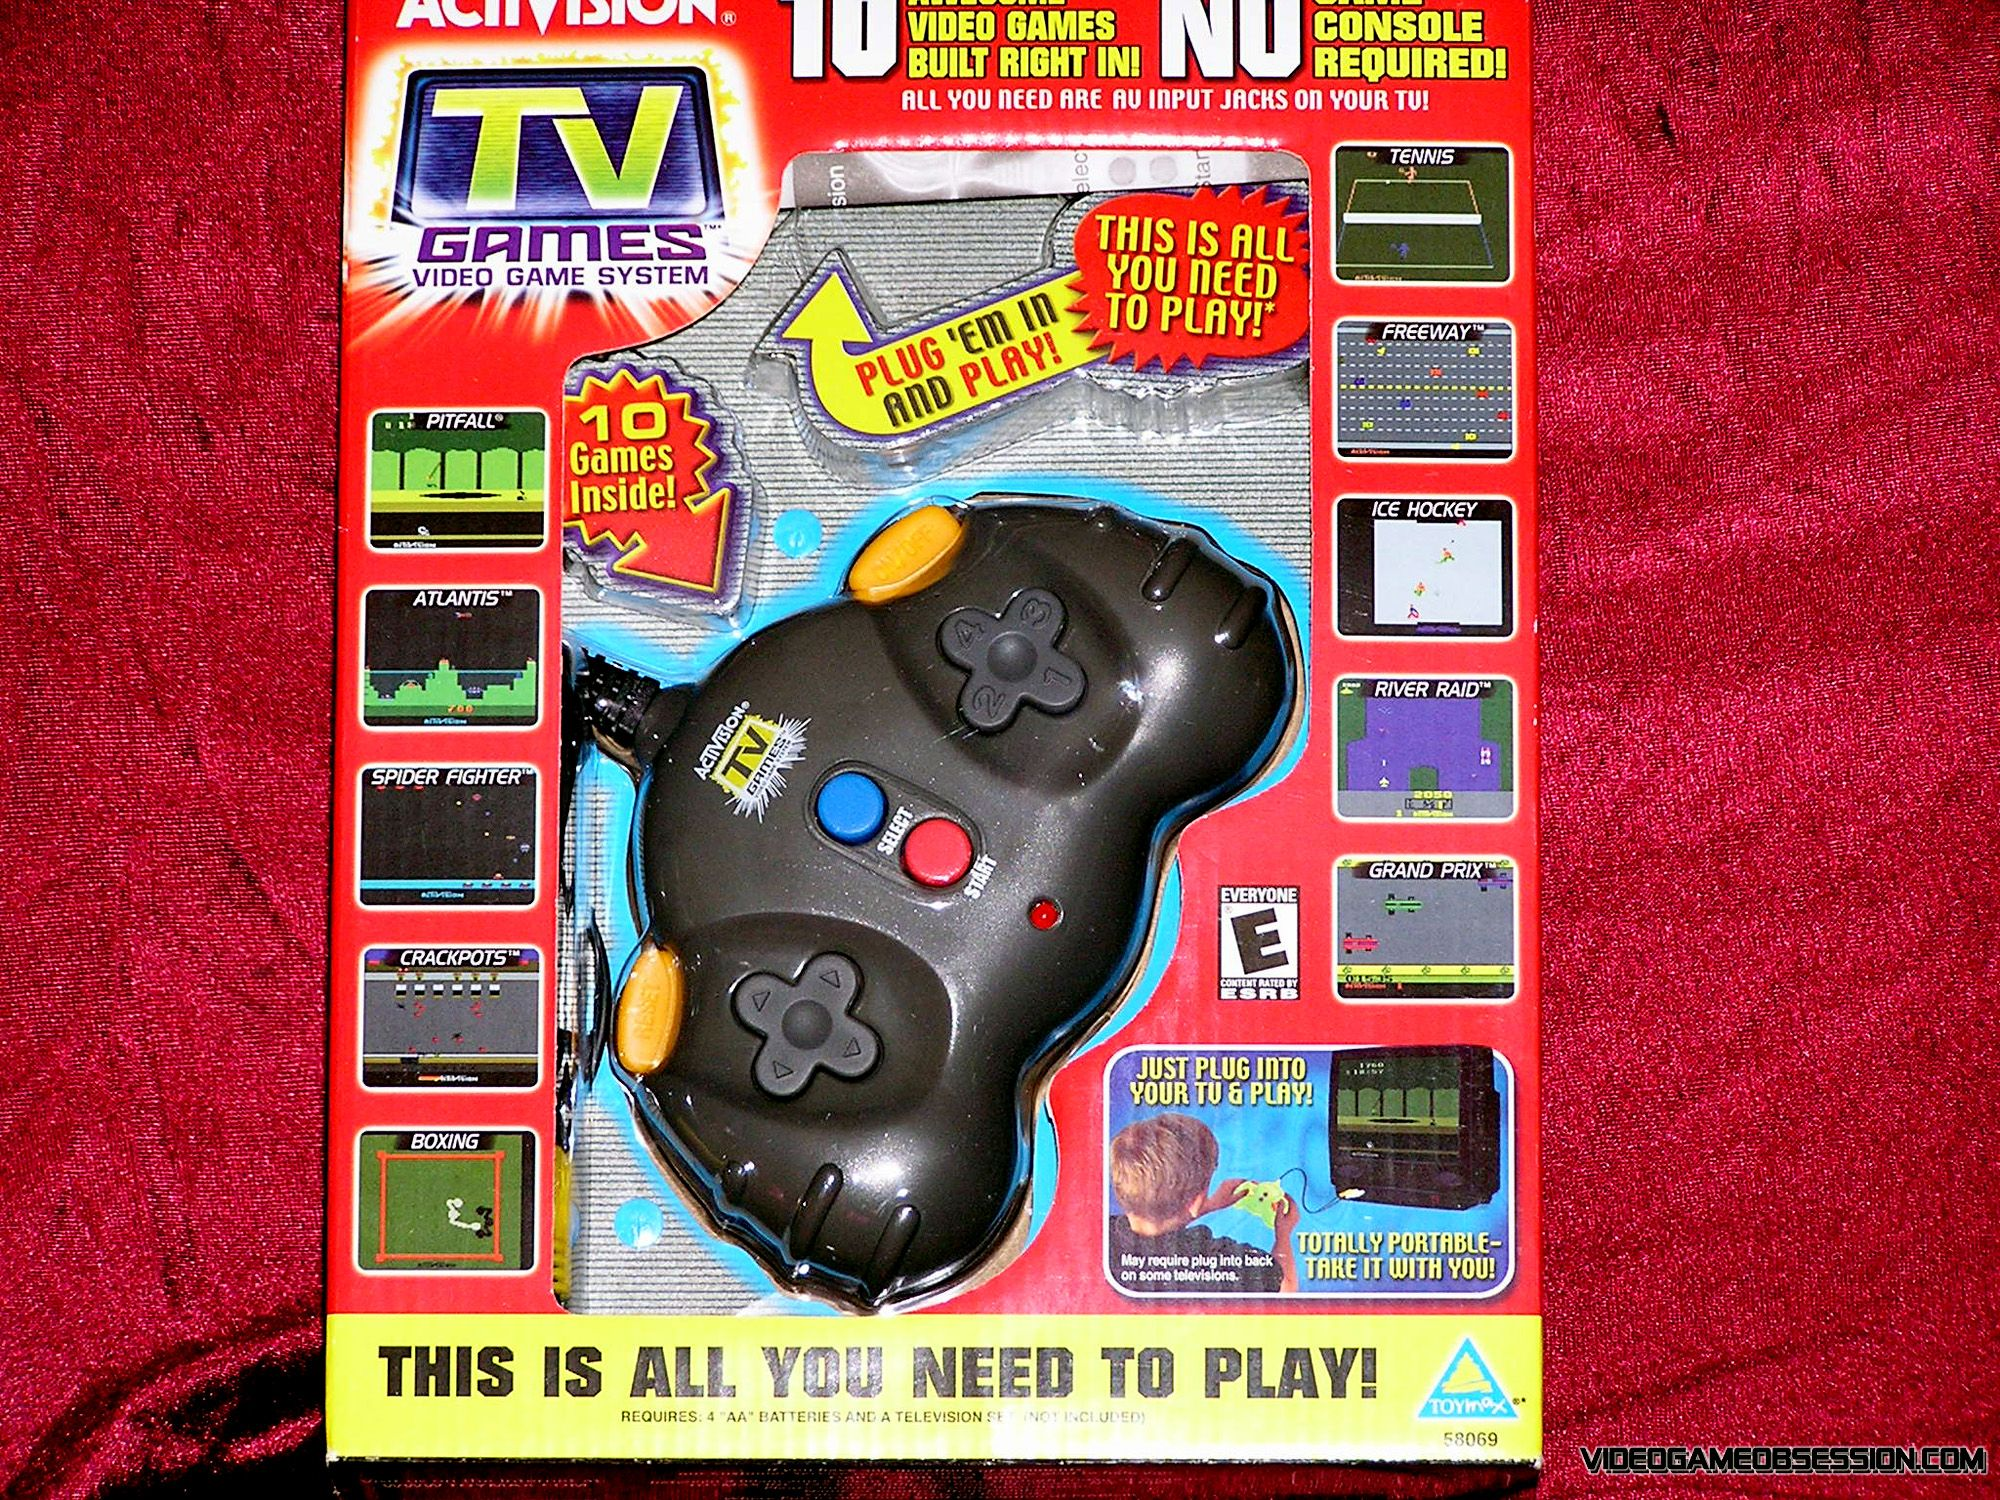 Tv Games Plug And Play : The activision in tv games plug n play black